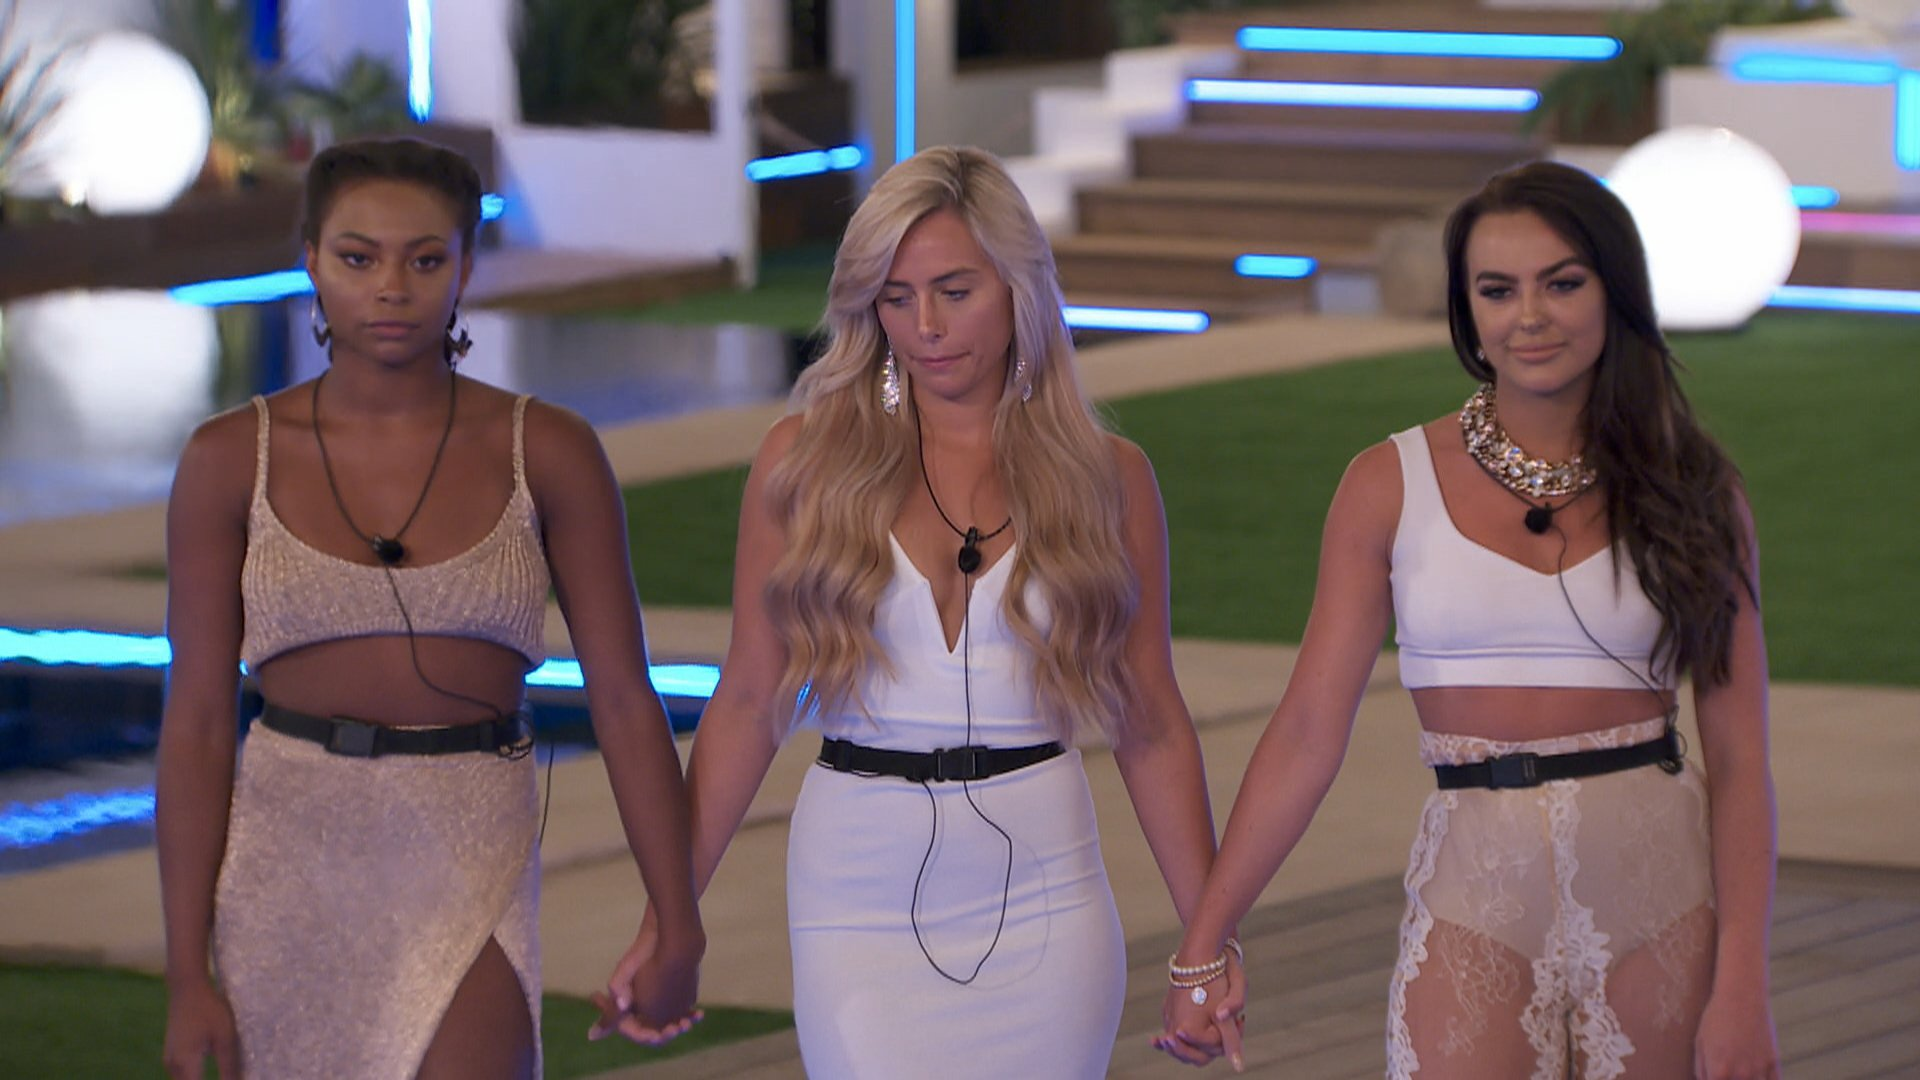 Love Island's Samira may be coupled up but her race means she's been isolated